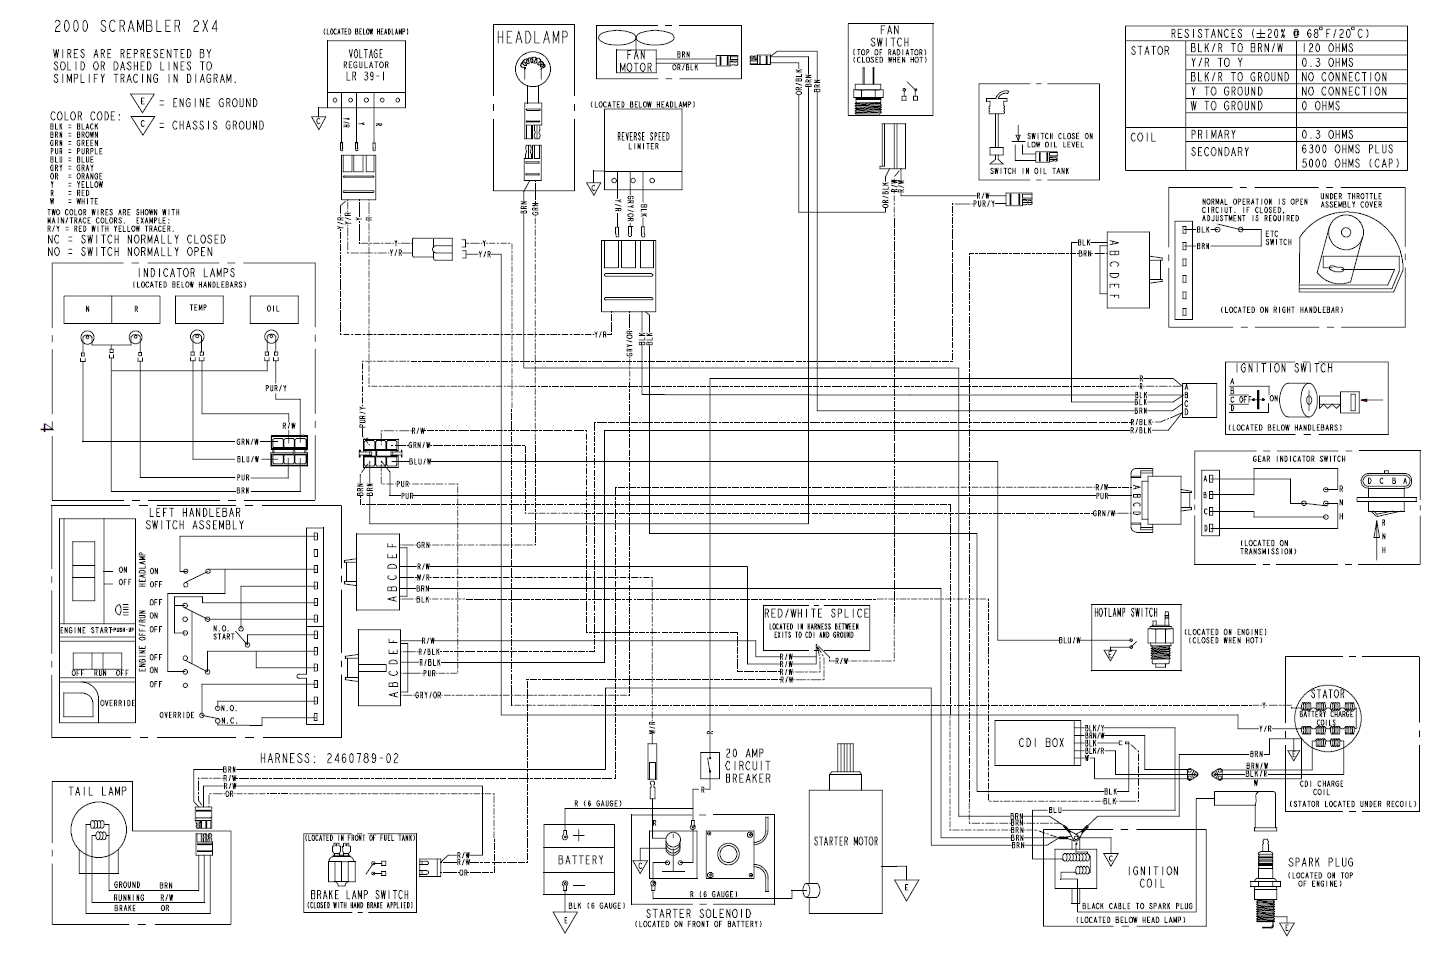 2005 polaris 500 ranger parts diagram schematic diagram download 02 Polaris Ranger Parts Diagram home · 2005 polaris 500 ranger parts diagram · 2003 polaris ranger diagram 5 8 malawi24 de \\u2022